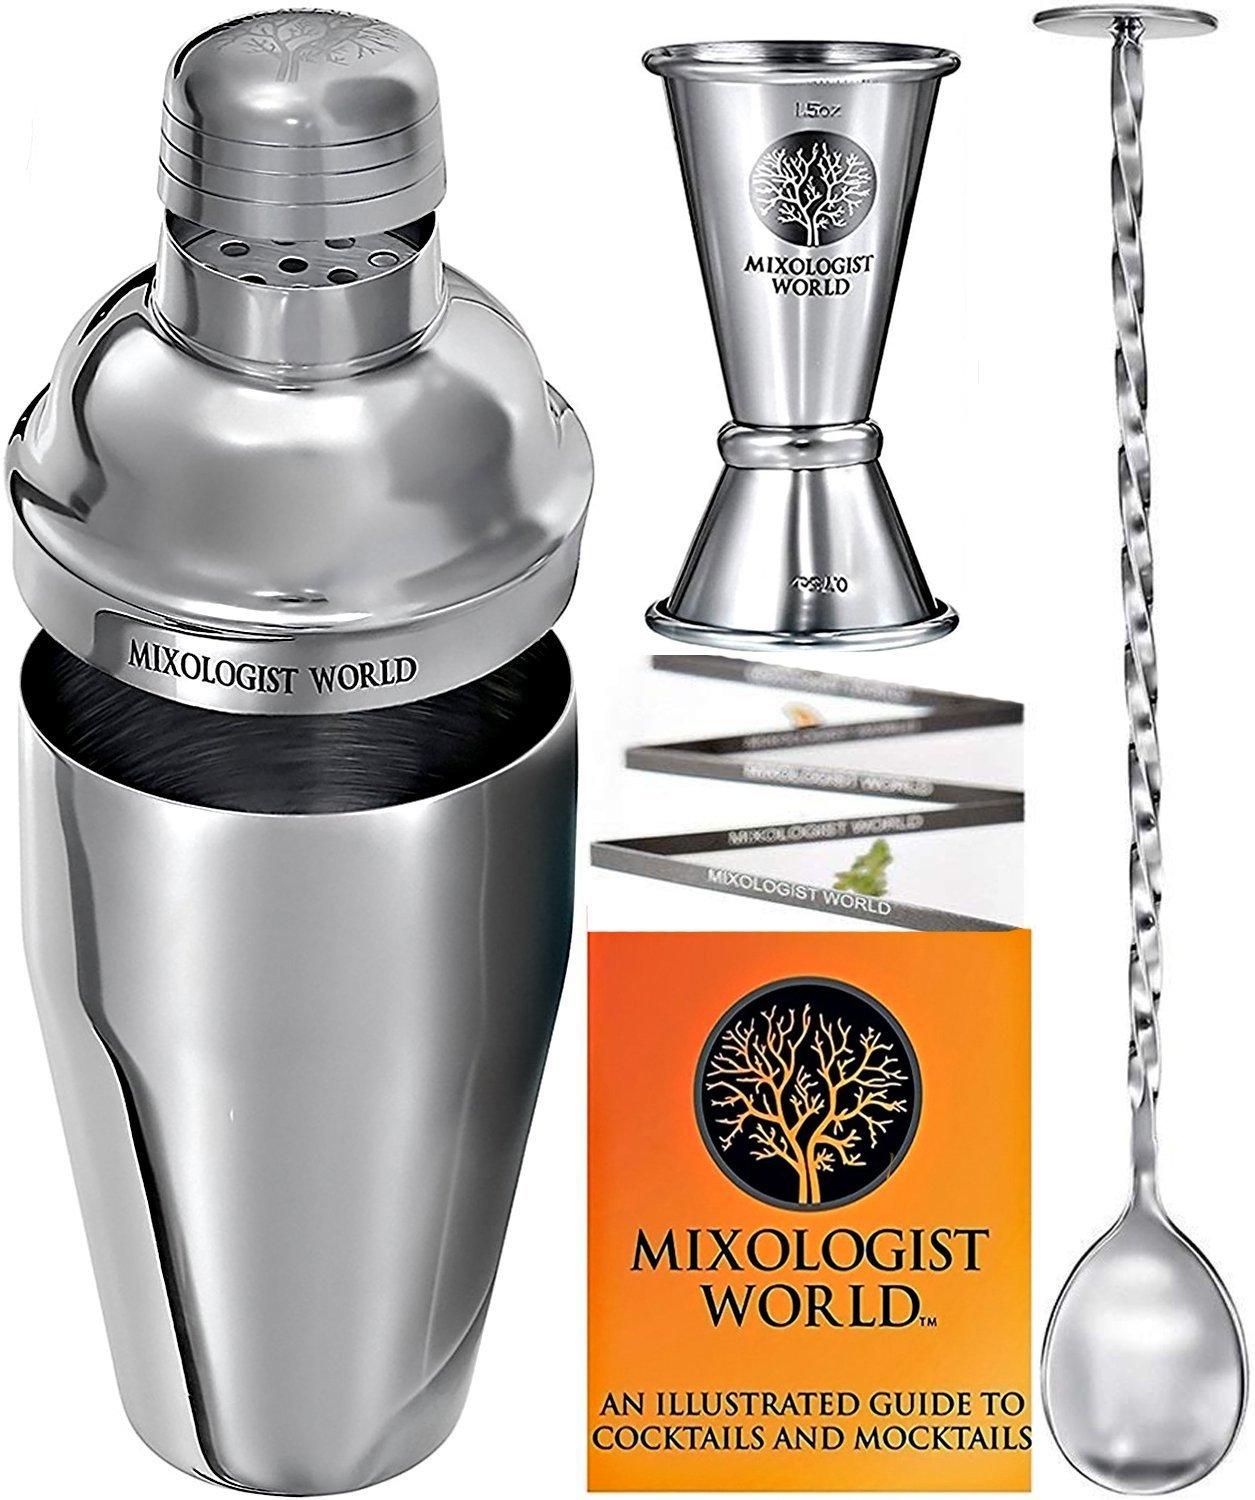 Cocktail Shaker Bar Tools - Built-in Strainer Set with Double Jigger, Mixing Spoon and Drink Recipes Booklet - Premium Bartender Kit - 24 oz Bar Accessories Perfect for a Home Bar Cart by Mixologist World (Image #1)